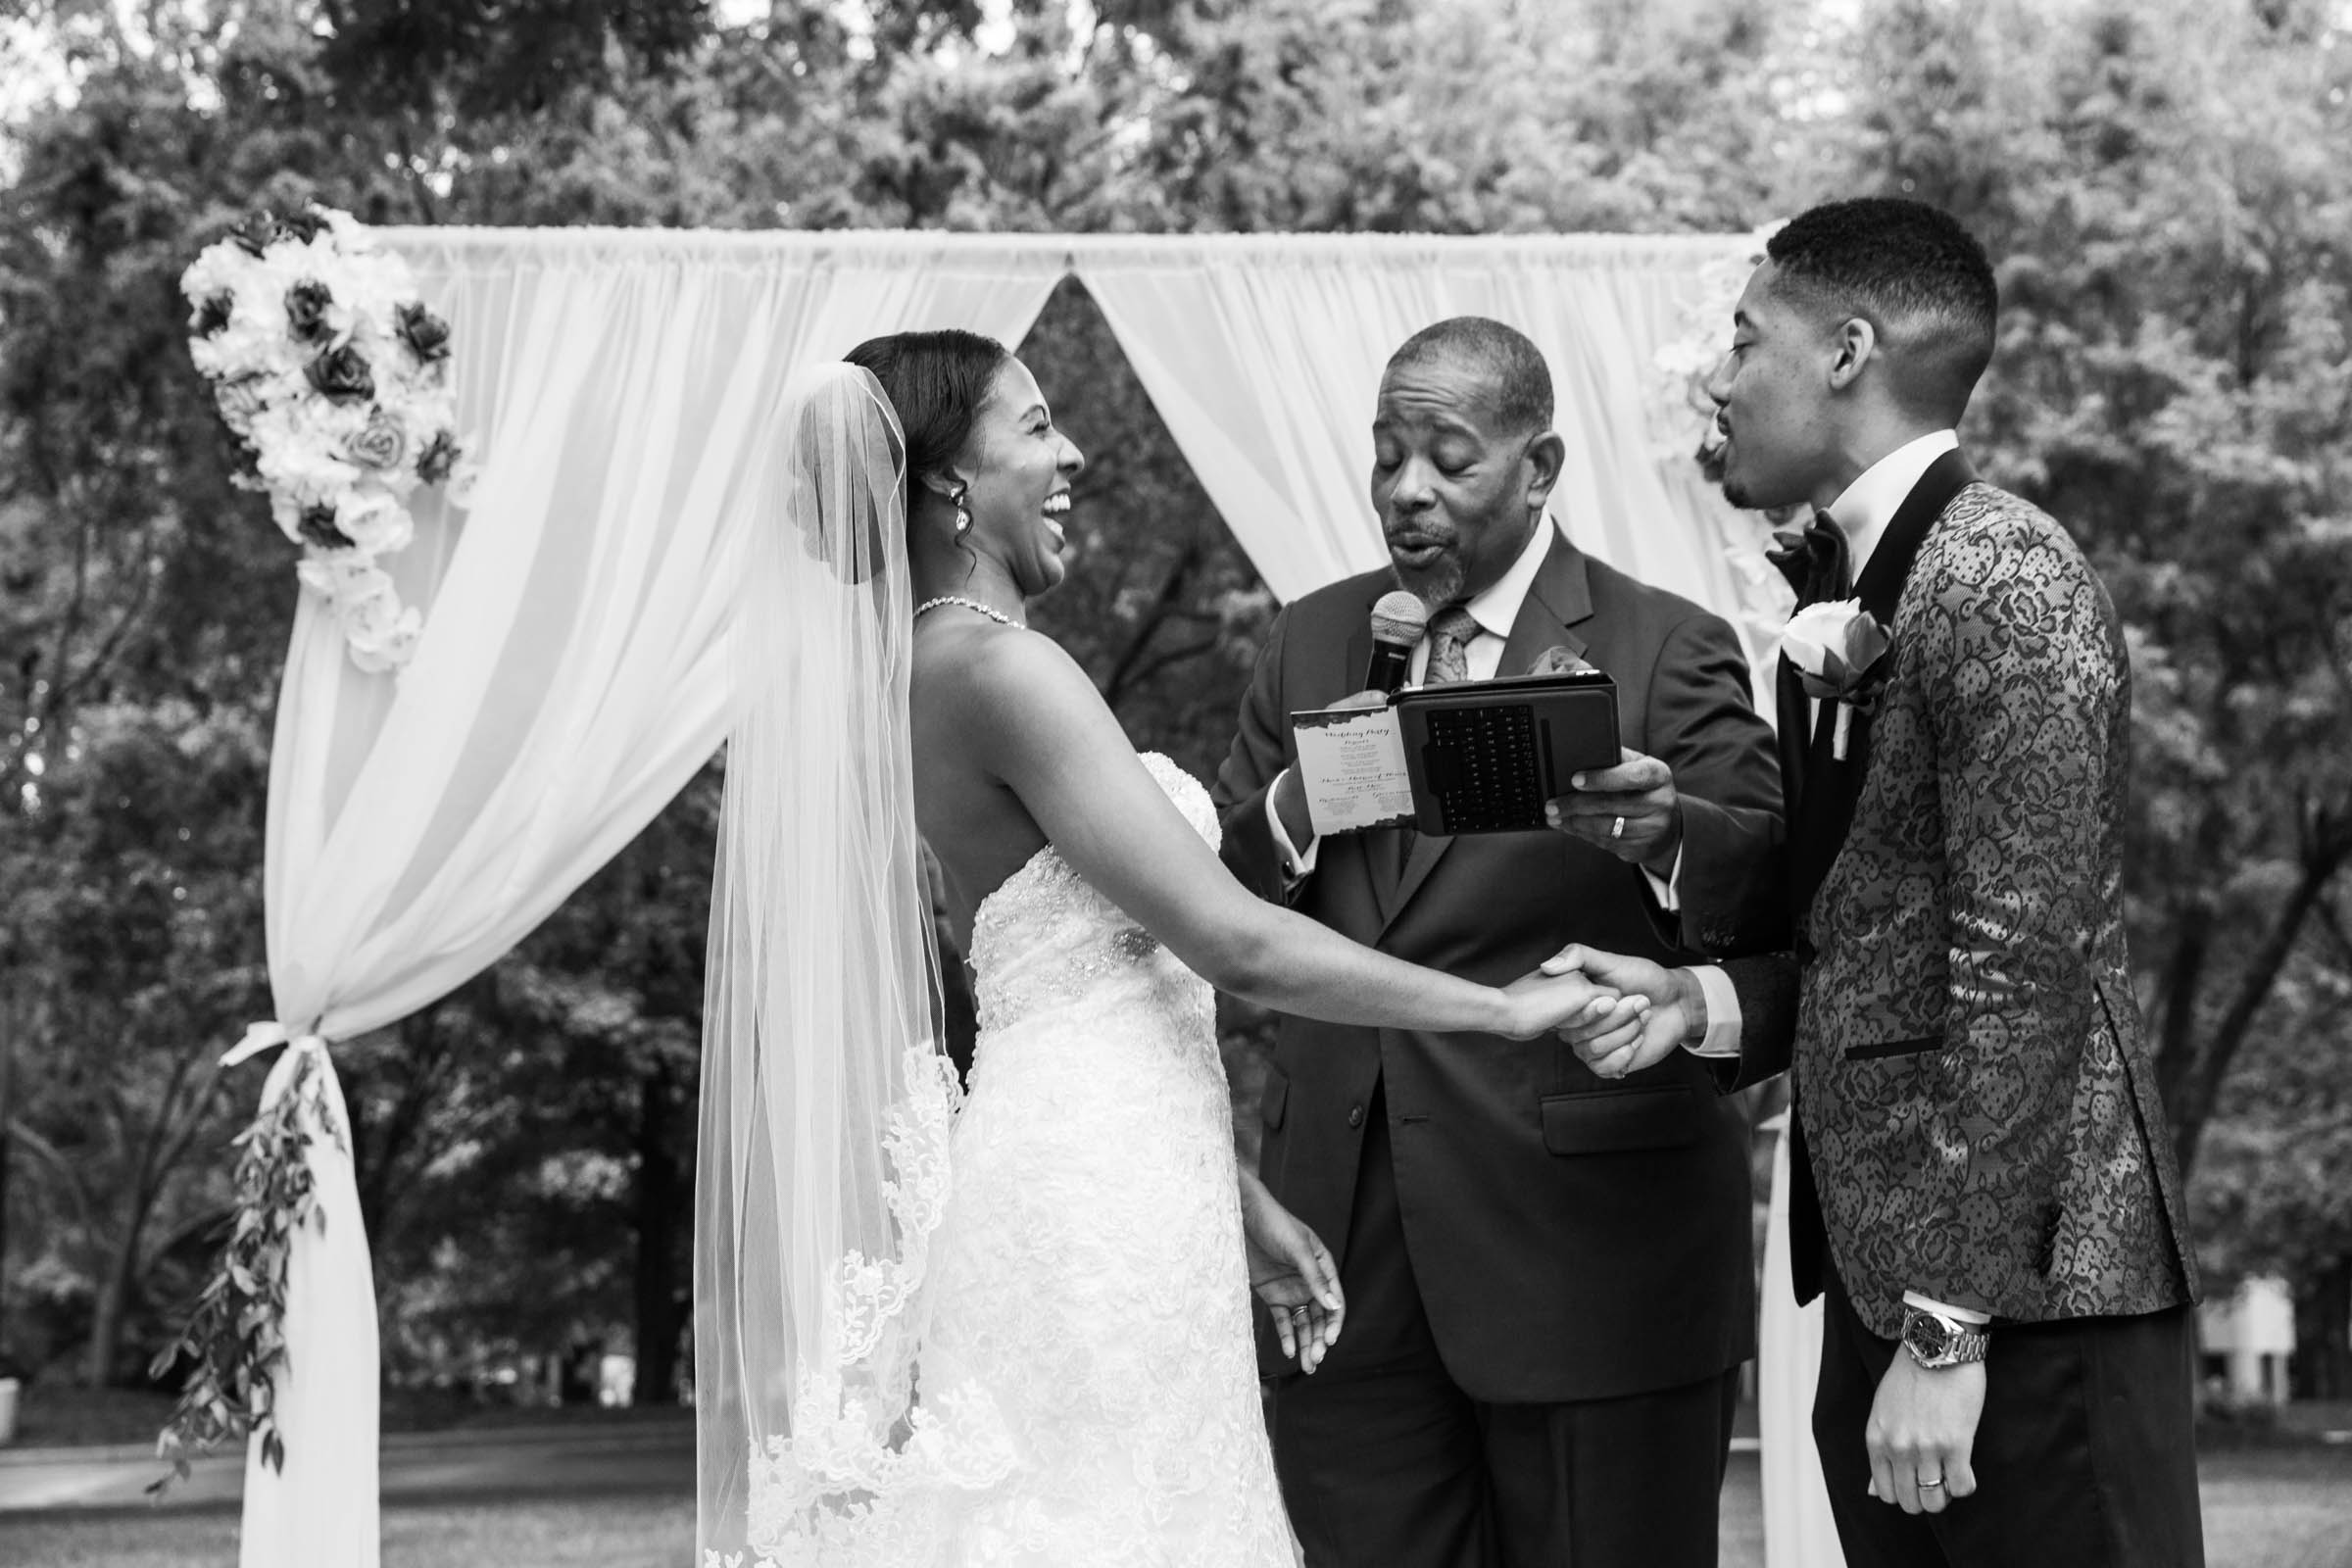 Black Bride Dream Wedding at  Hyatt Regency Fairfax Virginia Husband and Wife Wedding Photographers Megapixels Media Photography (58 of 104).jpg